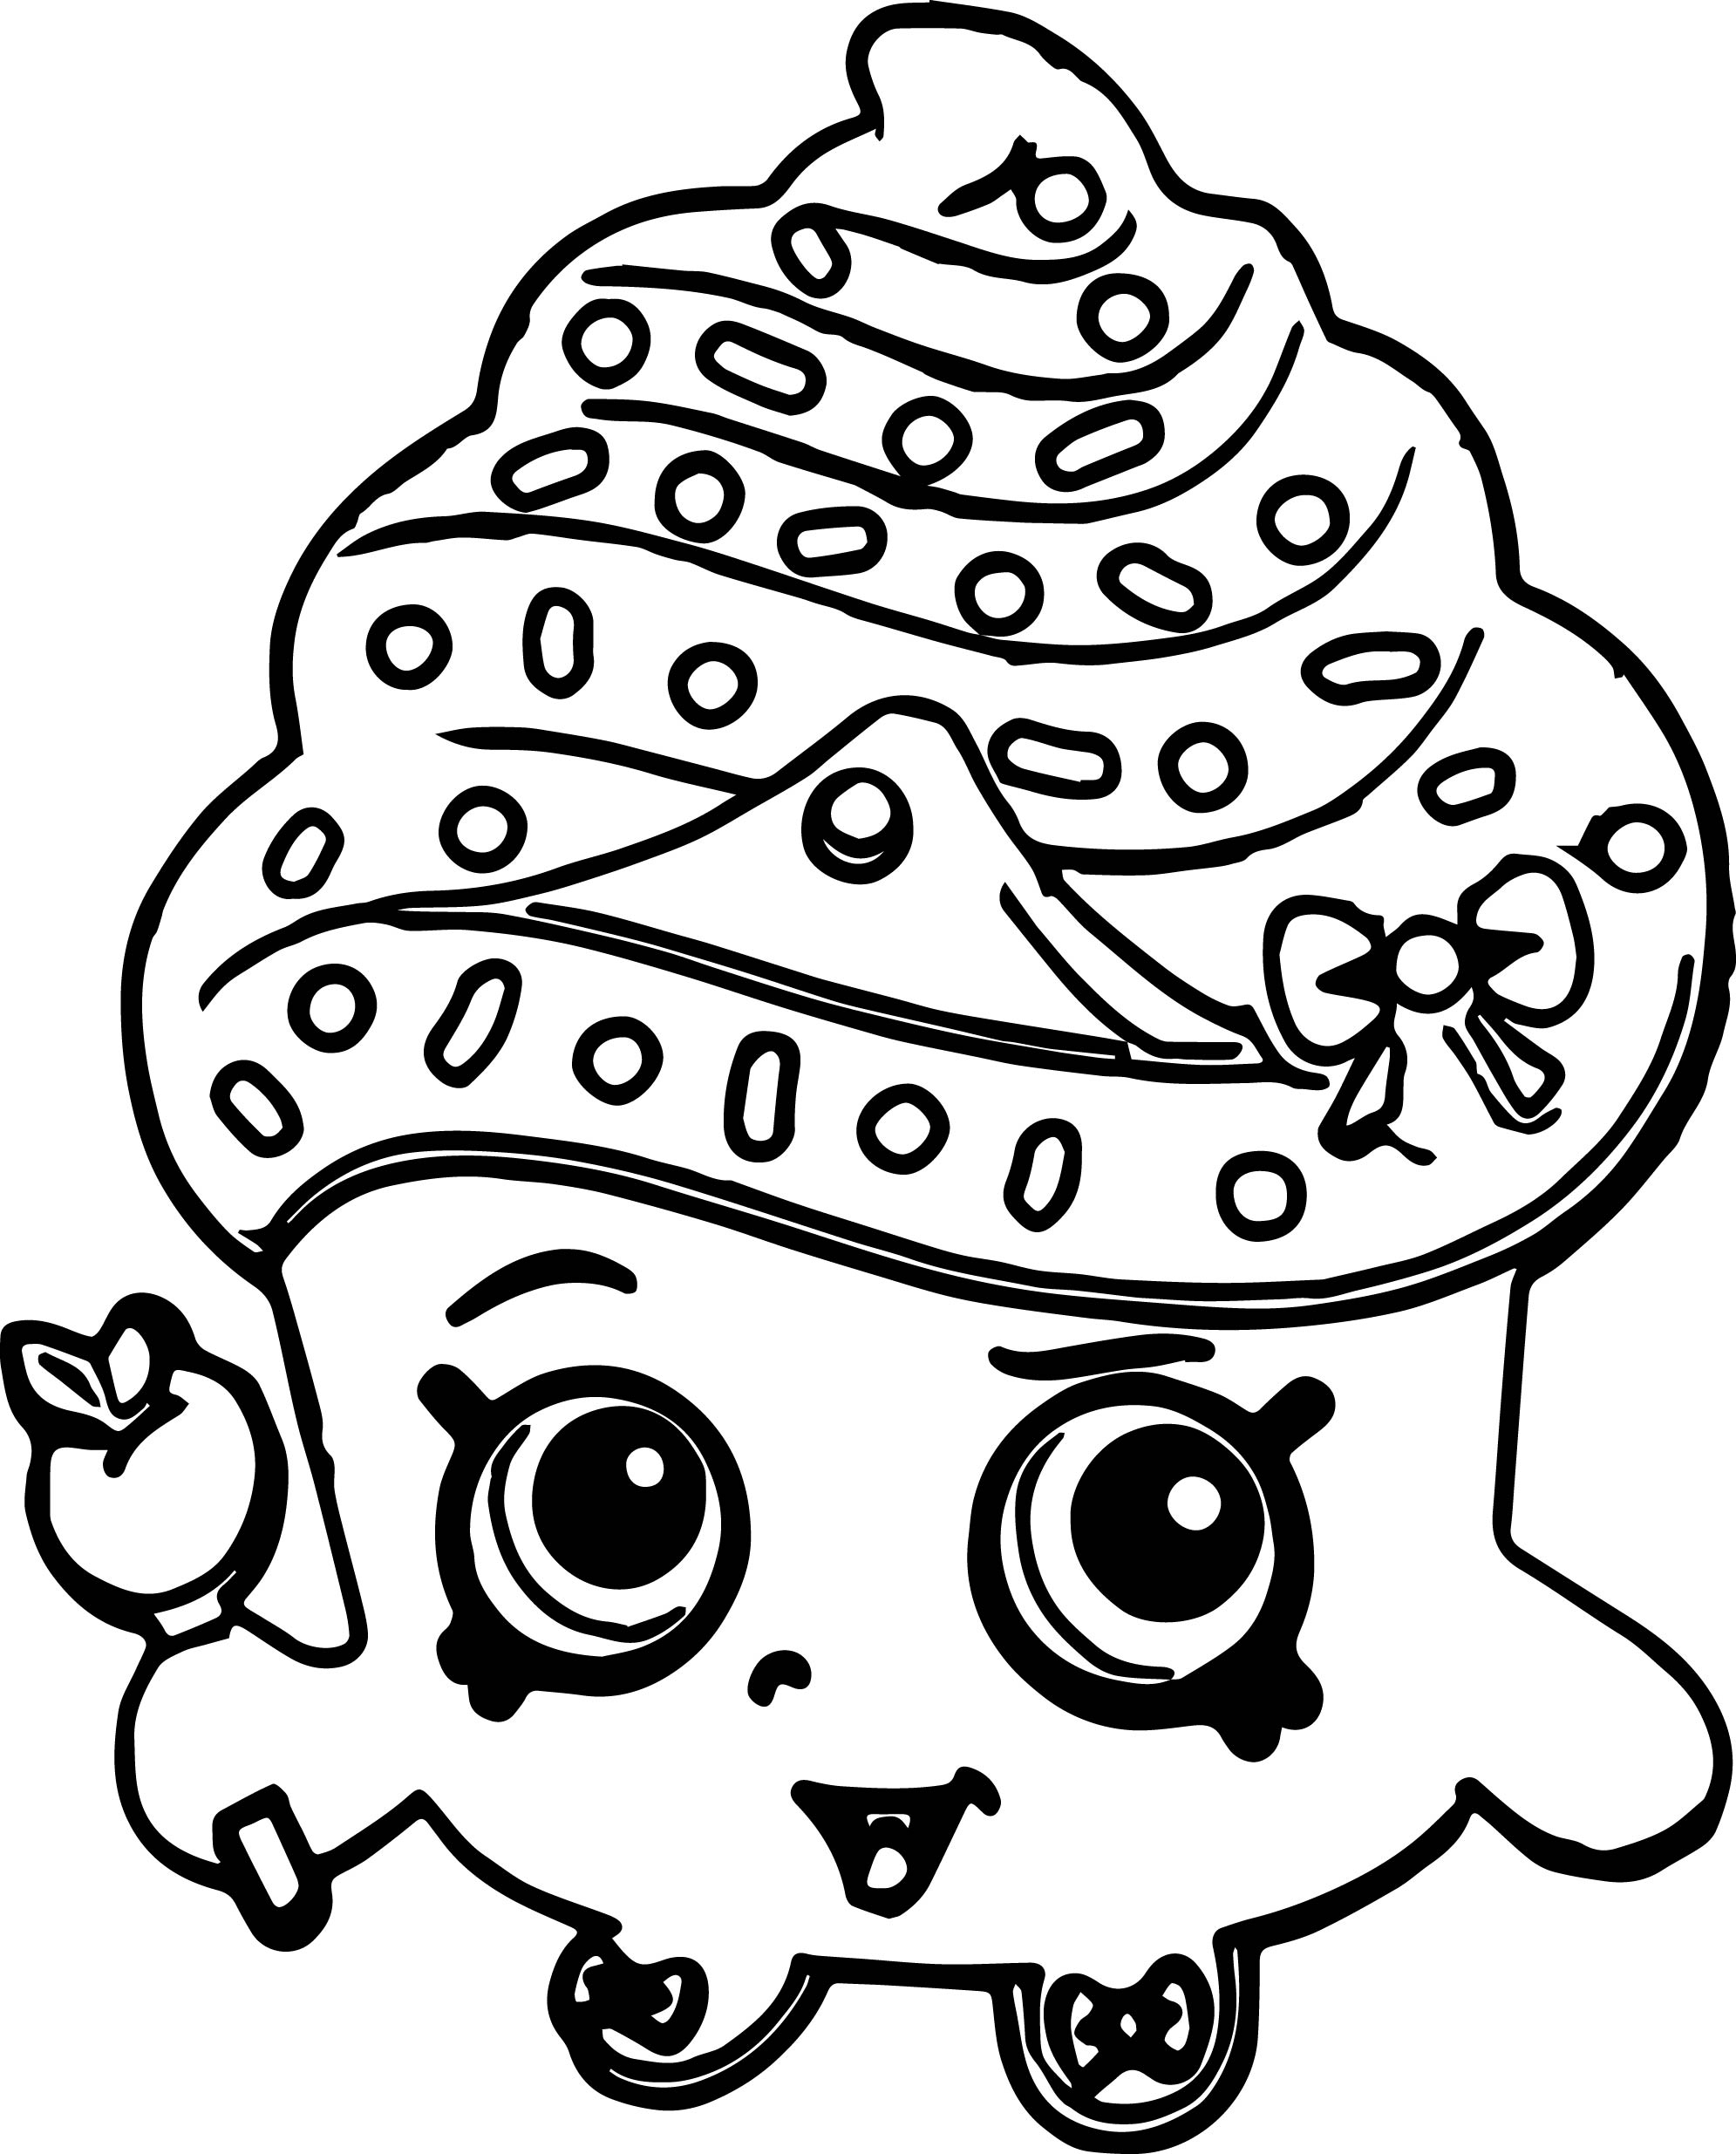 1991x2470 Awesome Printable Shopkins Coloring Pages Gallery Printable